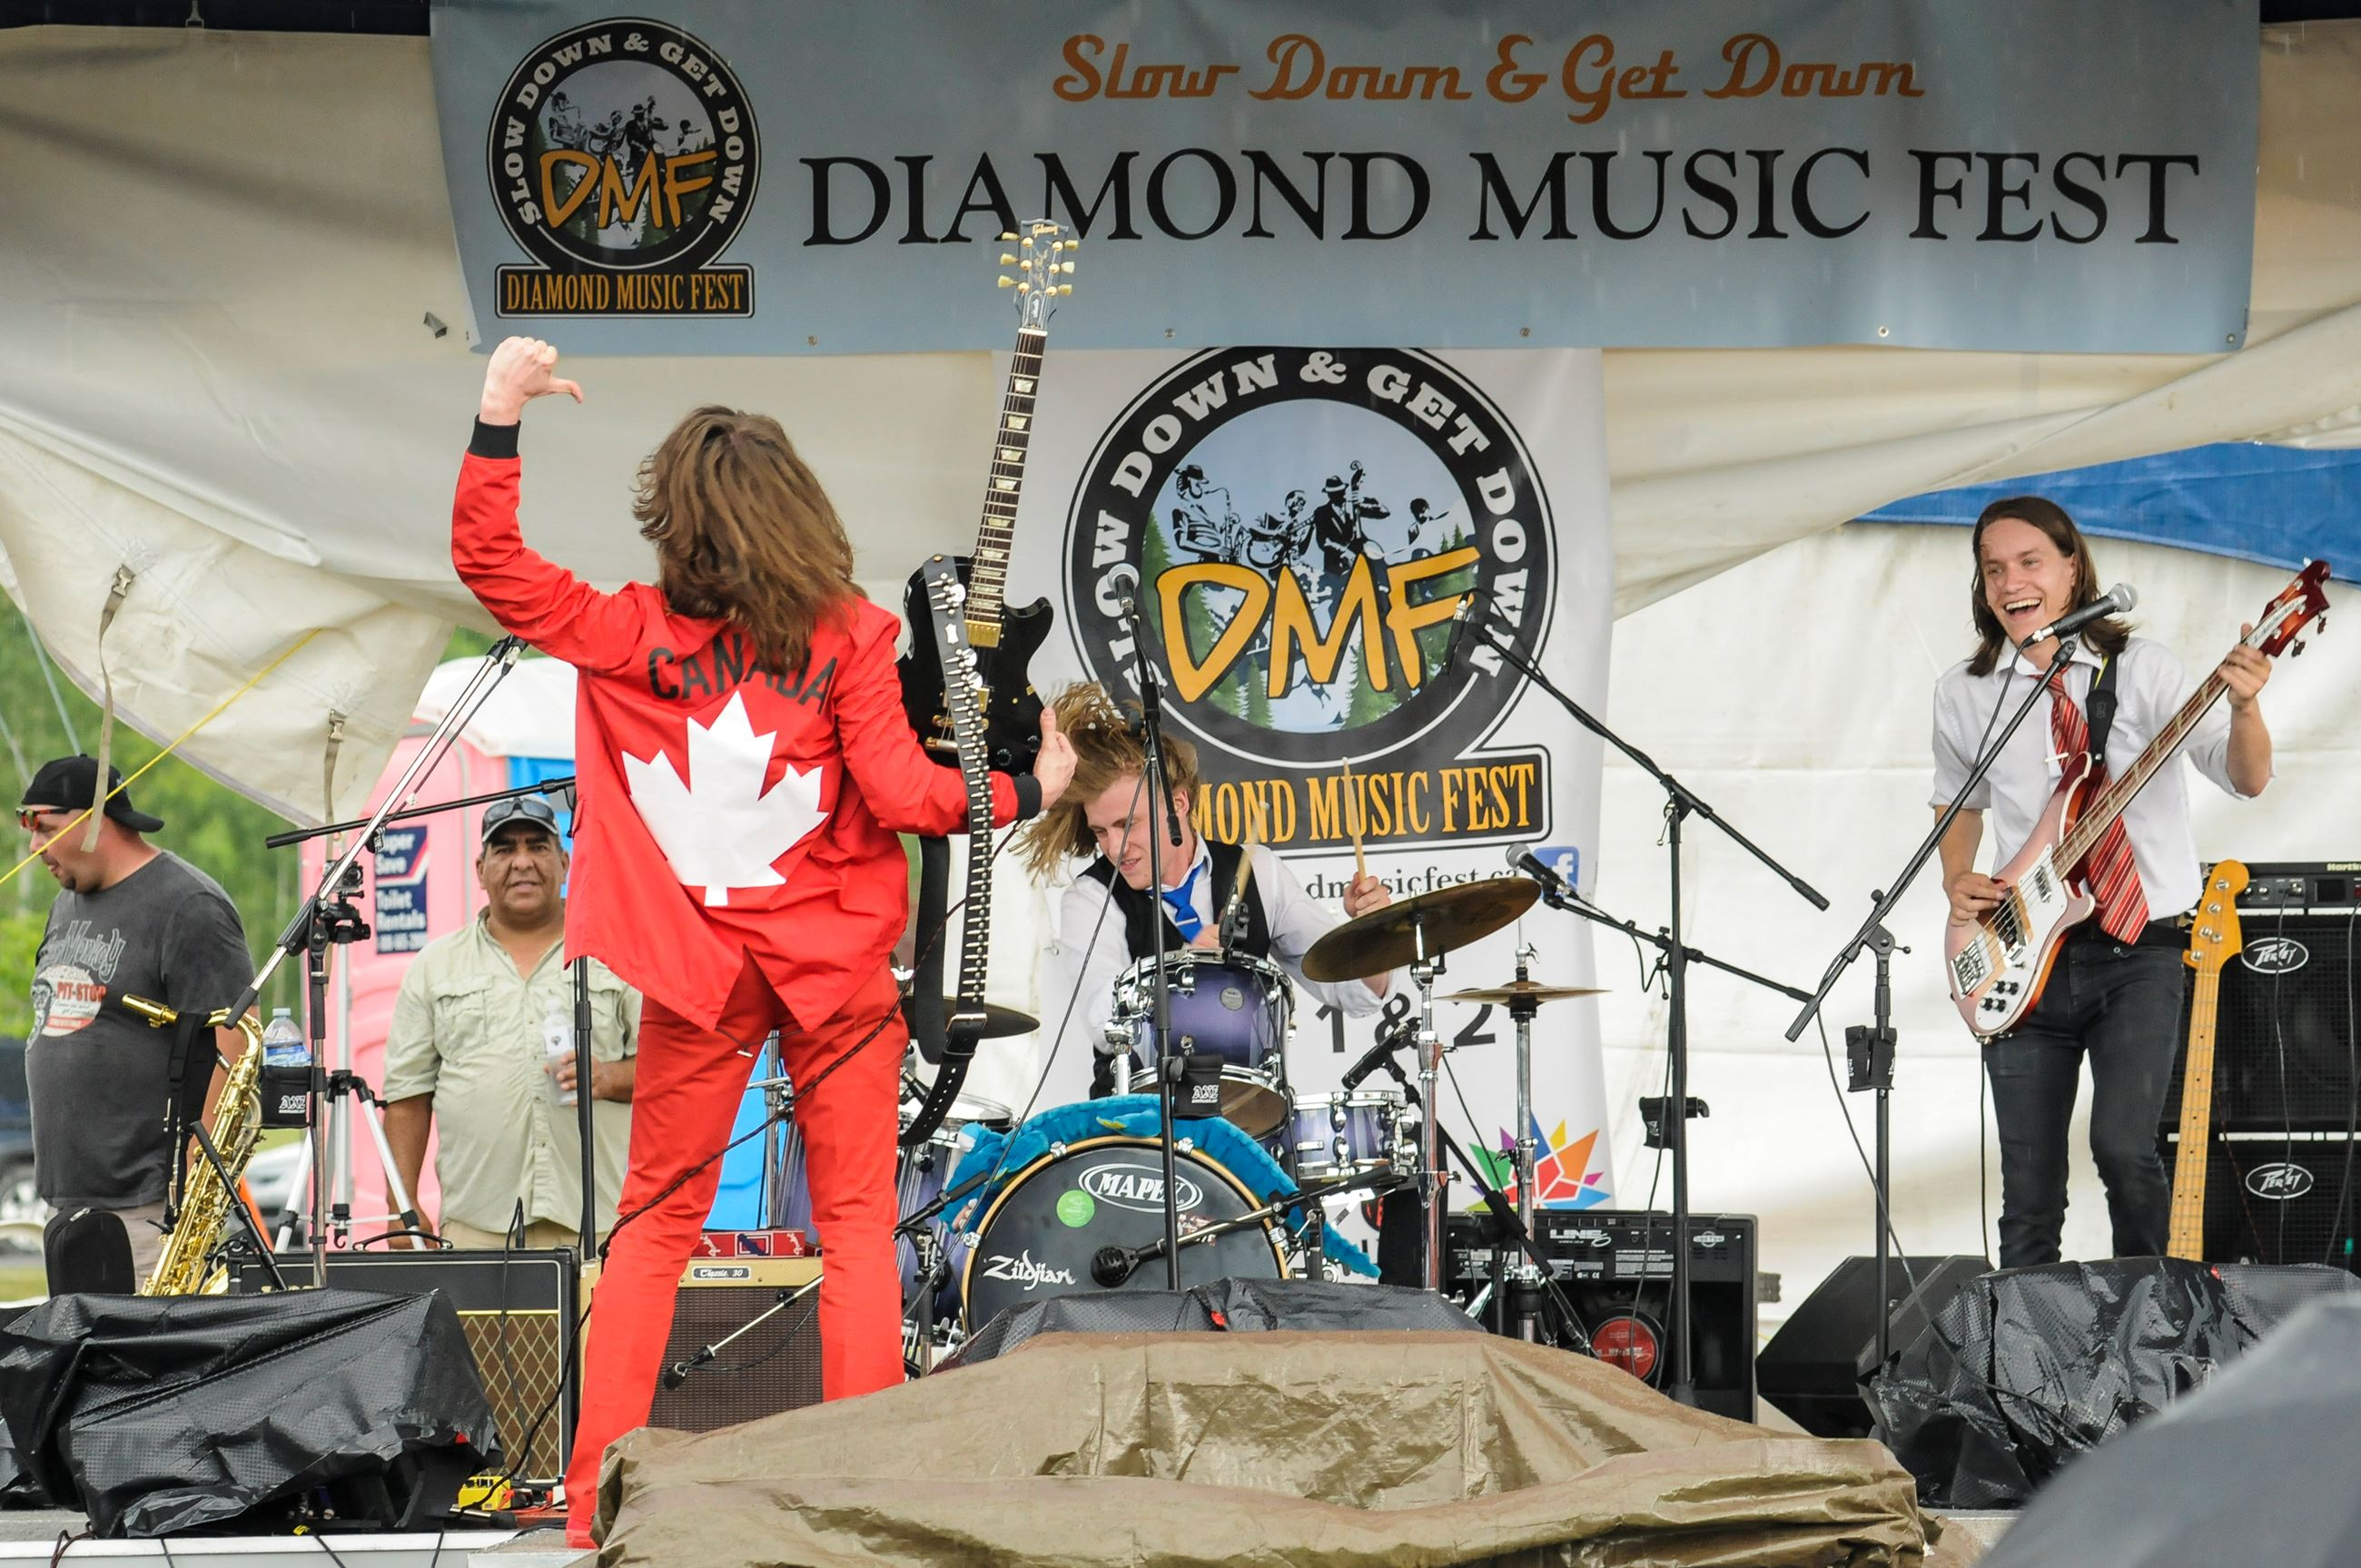 Diamond Music Fest